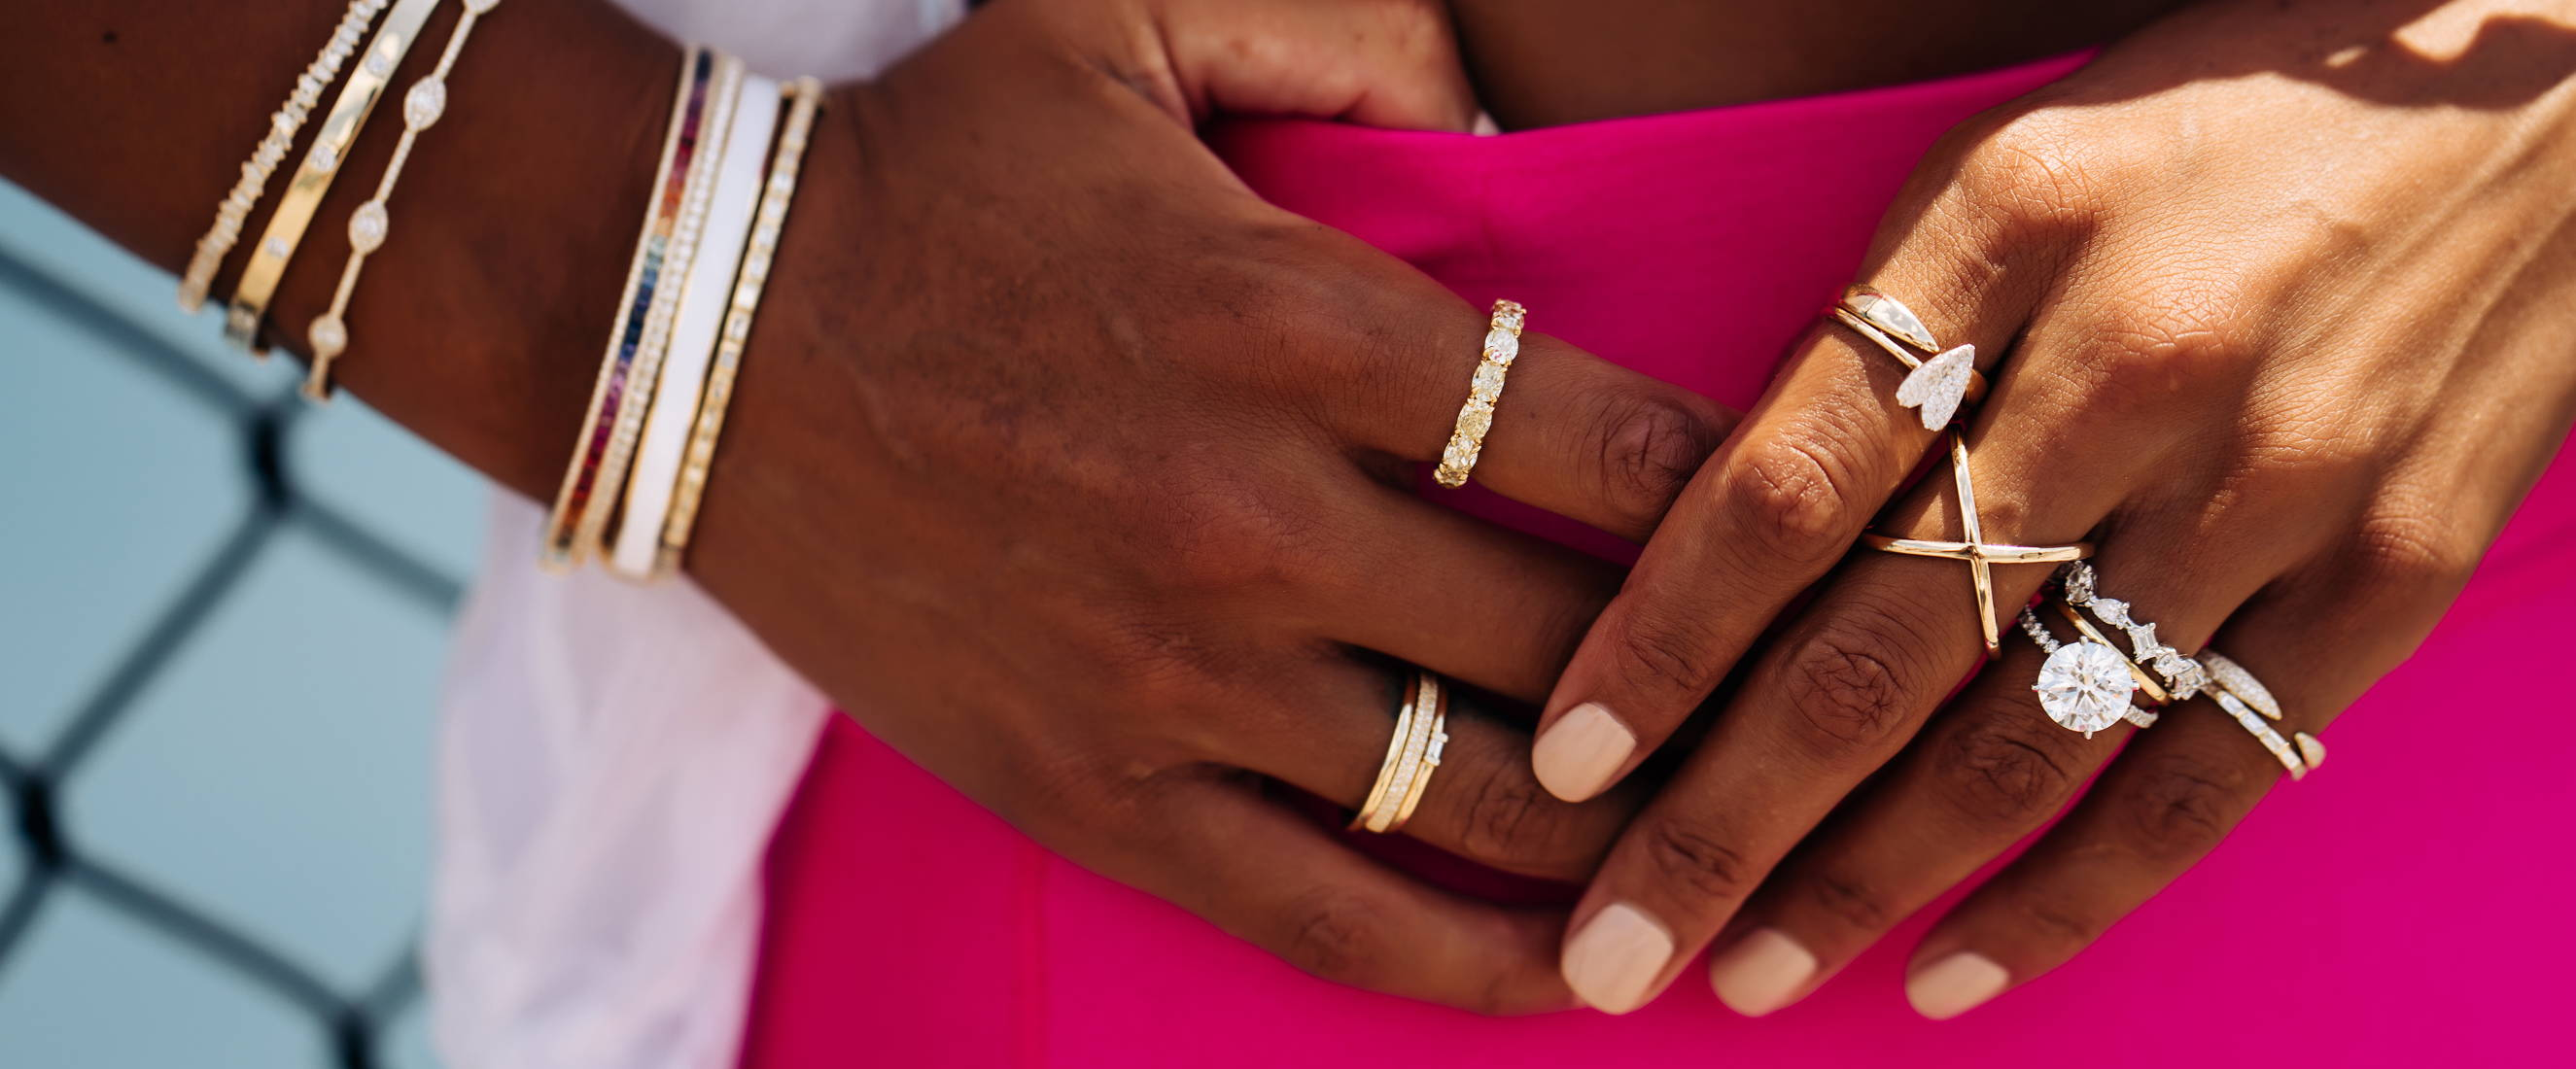 Close up of modeling wearing various Ring Concierge rings and bangles in a neon workout outfit